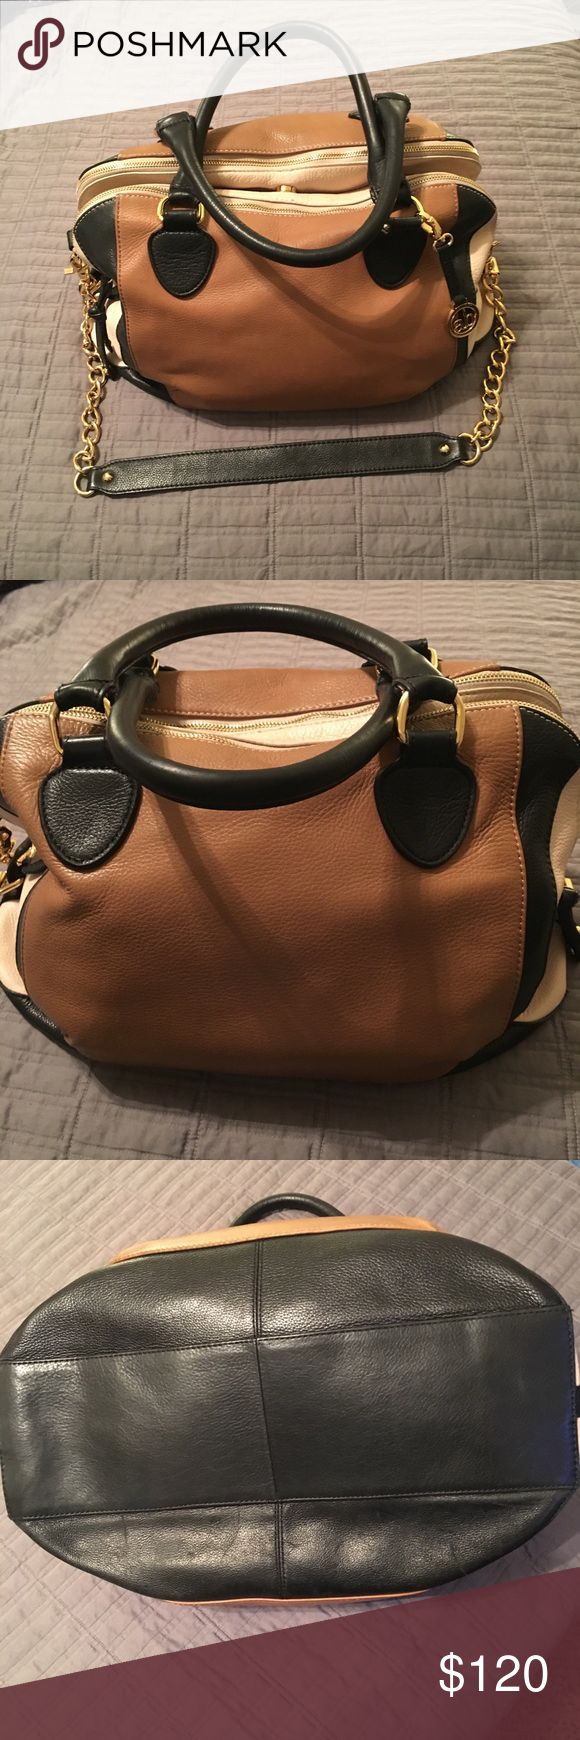 """💋SALE💋Audrey Brooke Purse Adorable previously loved tri-color satchel. Measurements 16"""" length, 11"""" Height, 8"""" Depth, 8.5 strap drop, 15"""" long strap drop. It has short handles and a long shoulder strap. The inside includes 3 sections, with one inside zipper pouch and 2 pockets. There are some slight stains on the inside leather shown in picture. The edges have a little wear where the straps attach. The inside has slight pilling, most not noticeable, overall the purse is still in great…"""